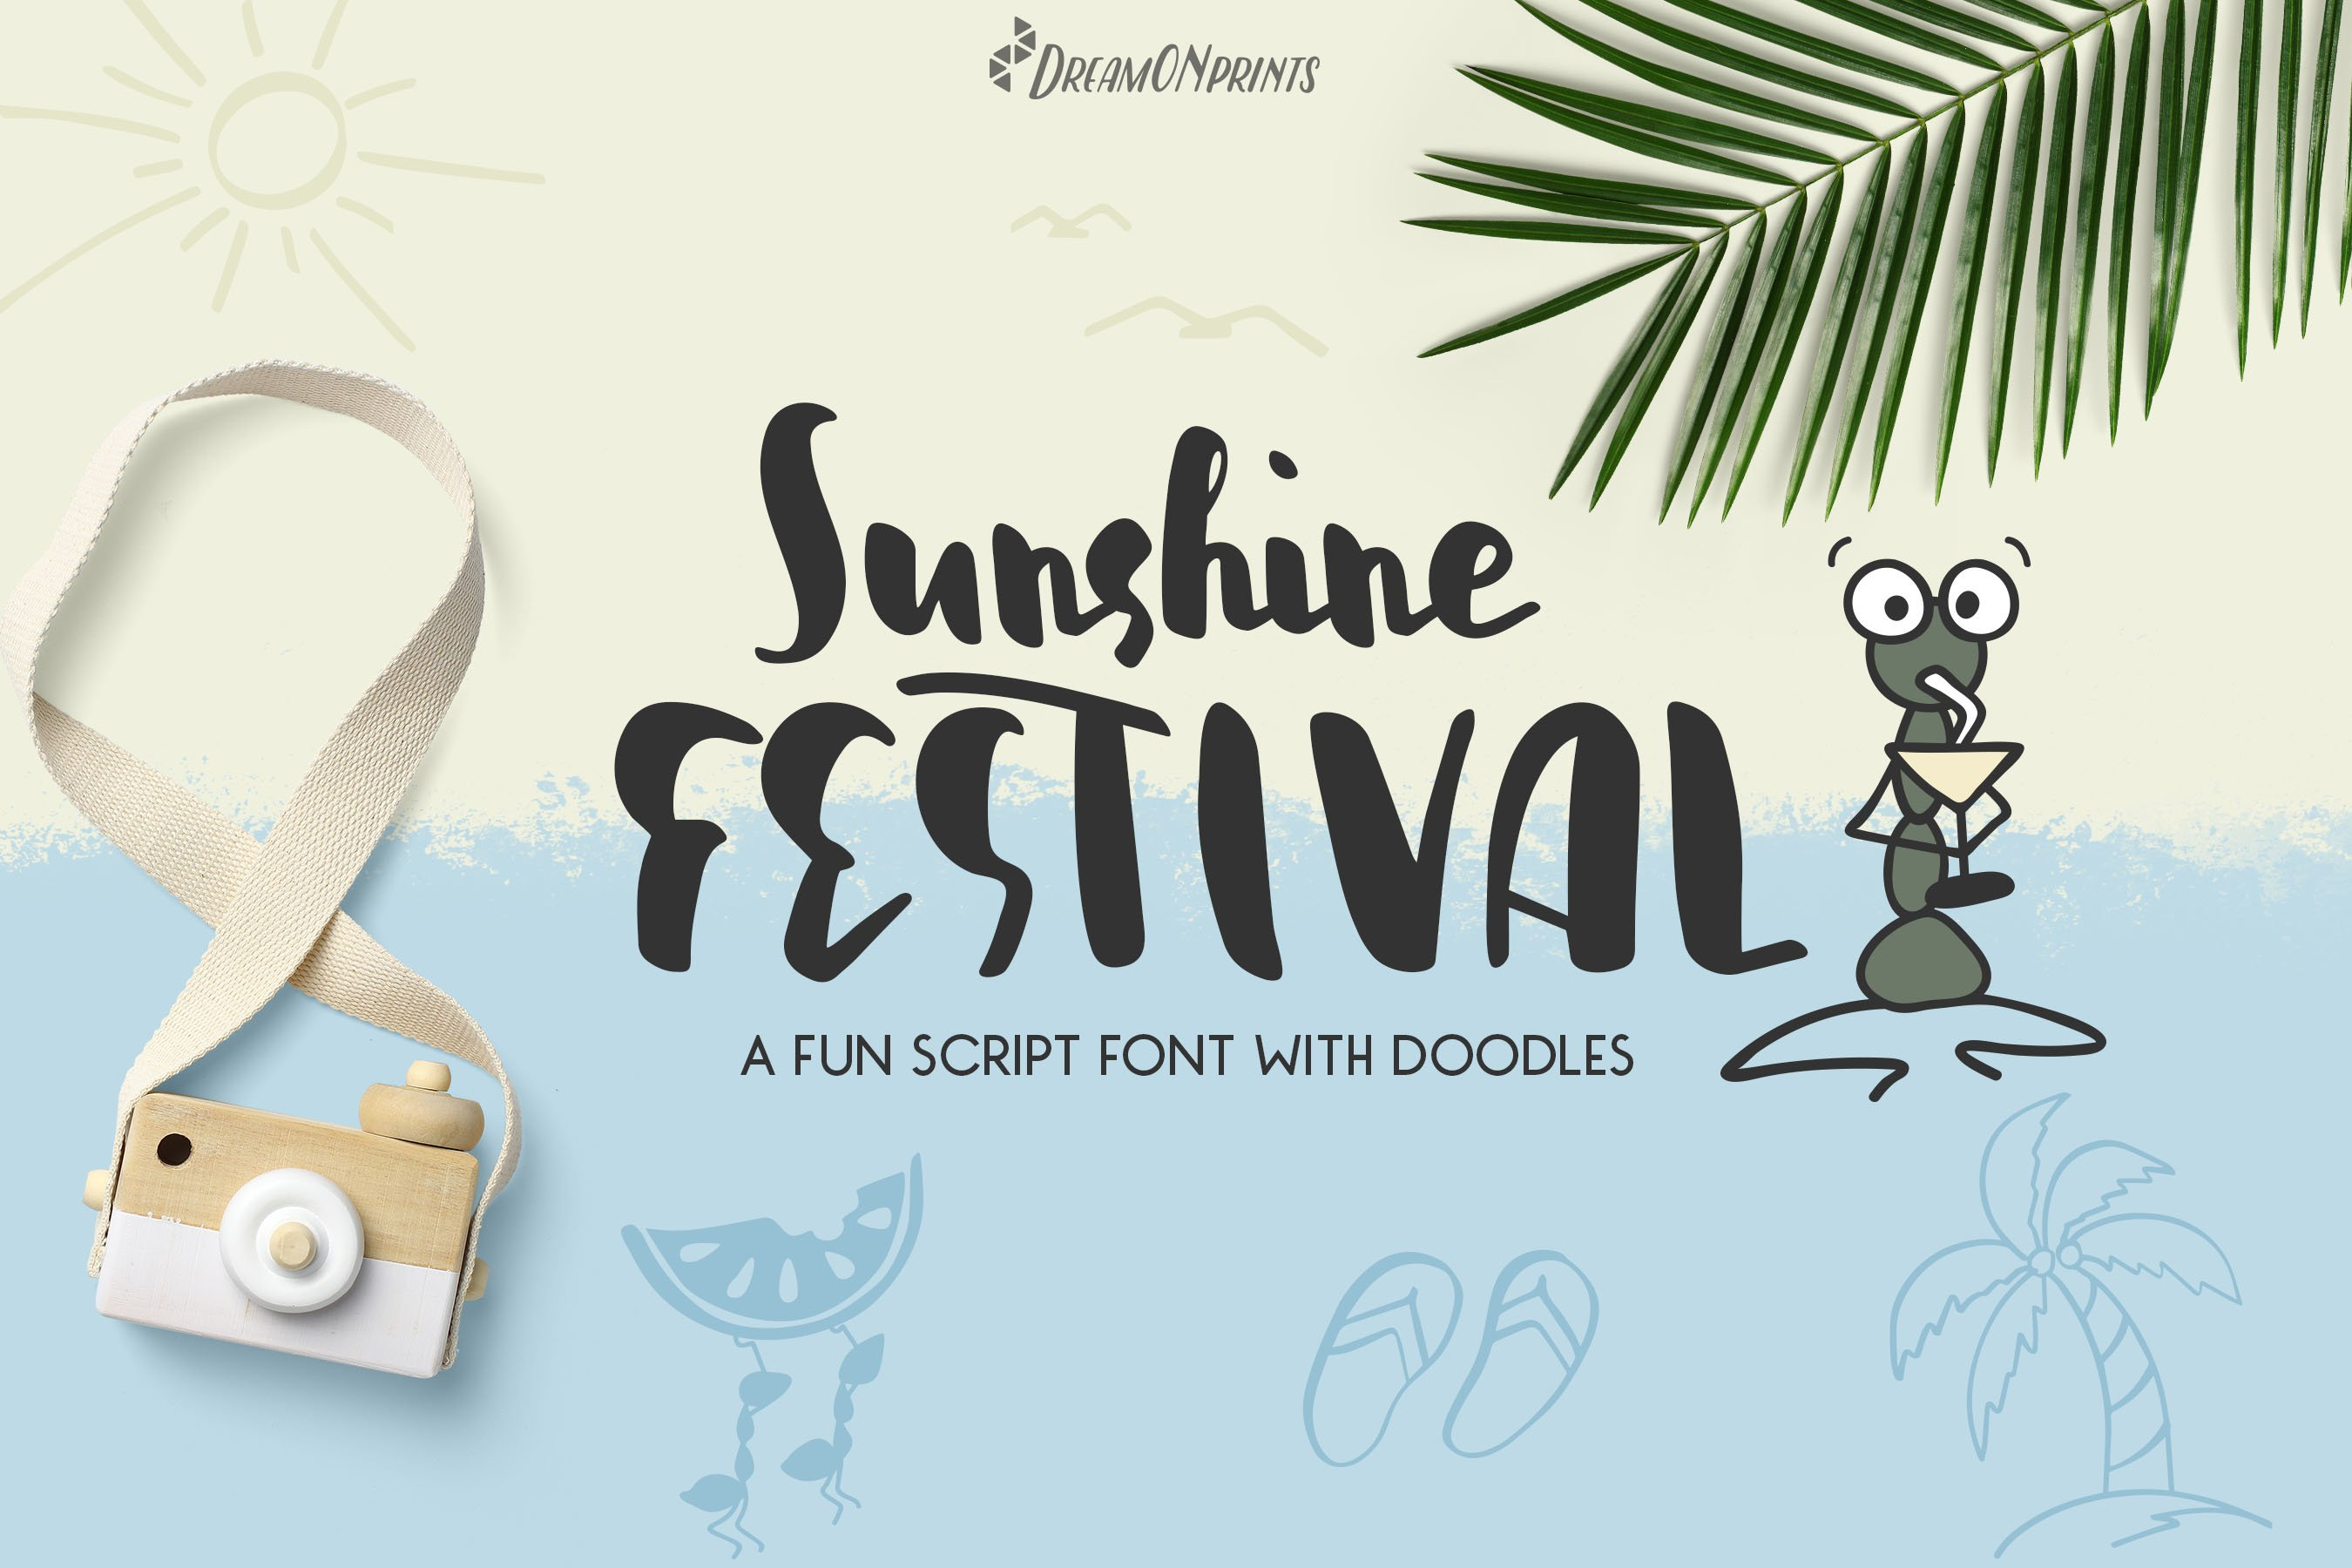 Sunshine Festival - Fun Script Font with Doodles example image 1